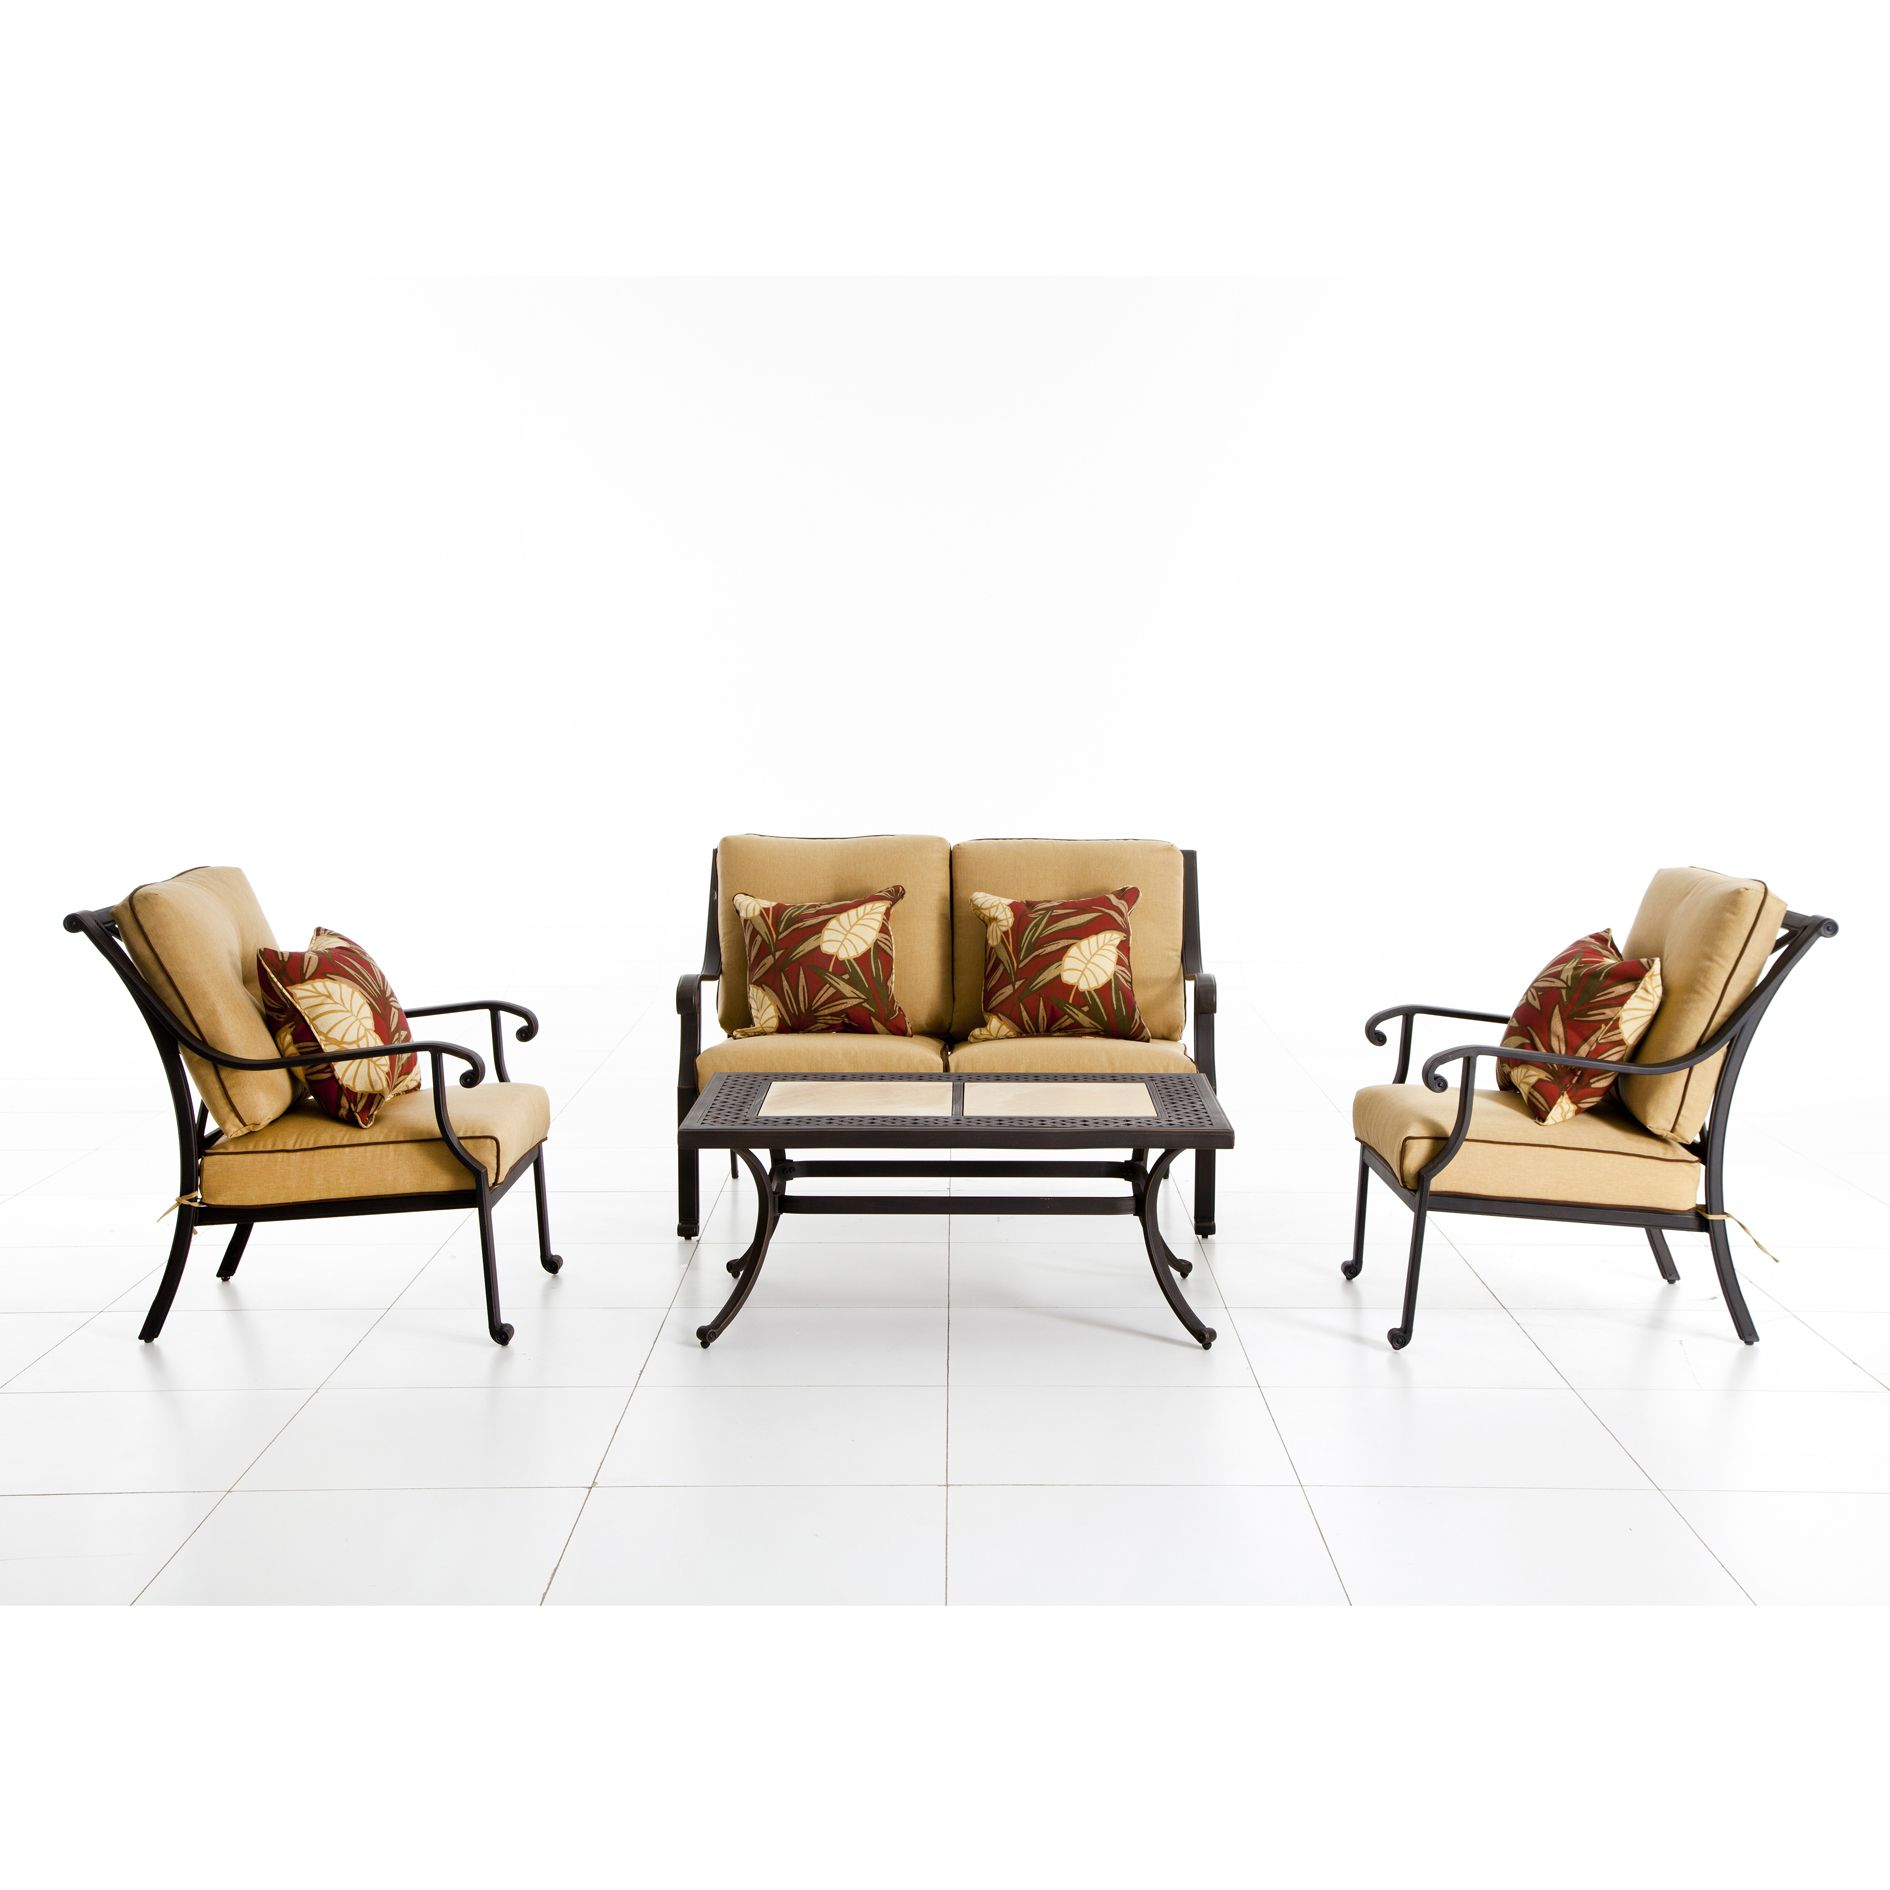 Grand Resort Thomas 4 Pc. Casual Seating Set *Limited Availability